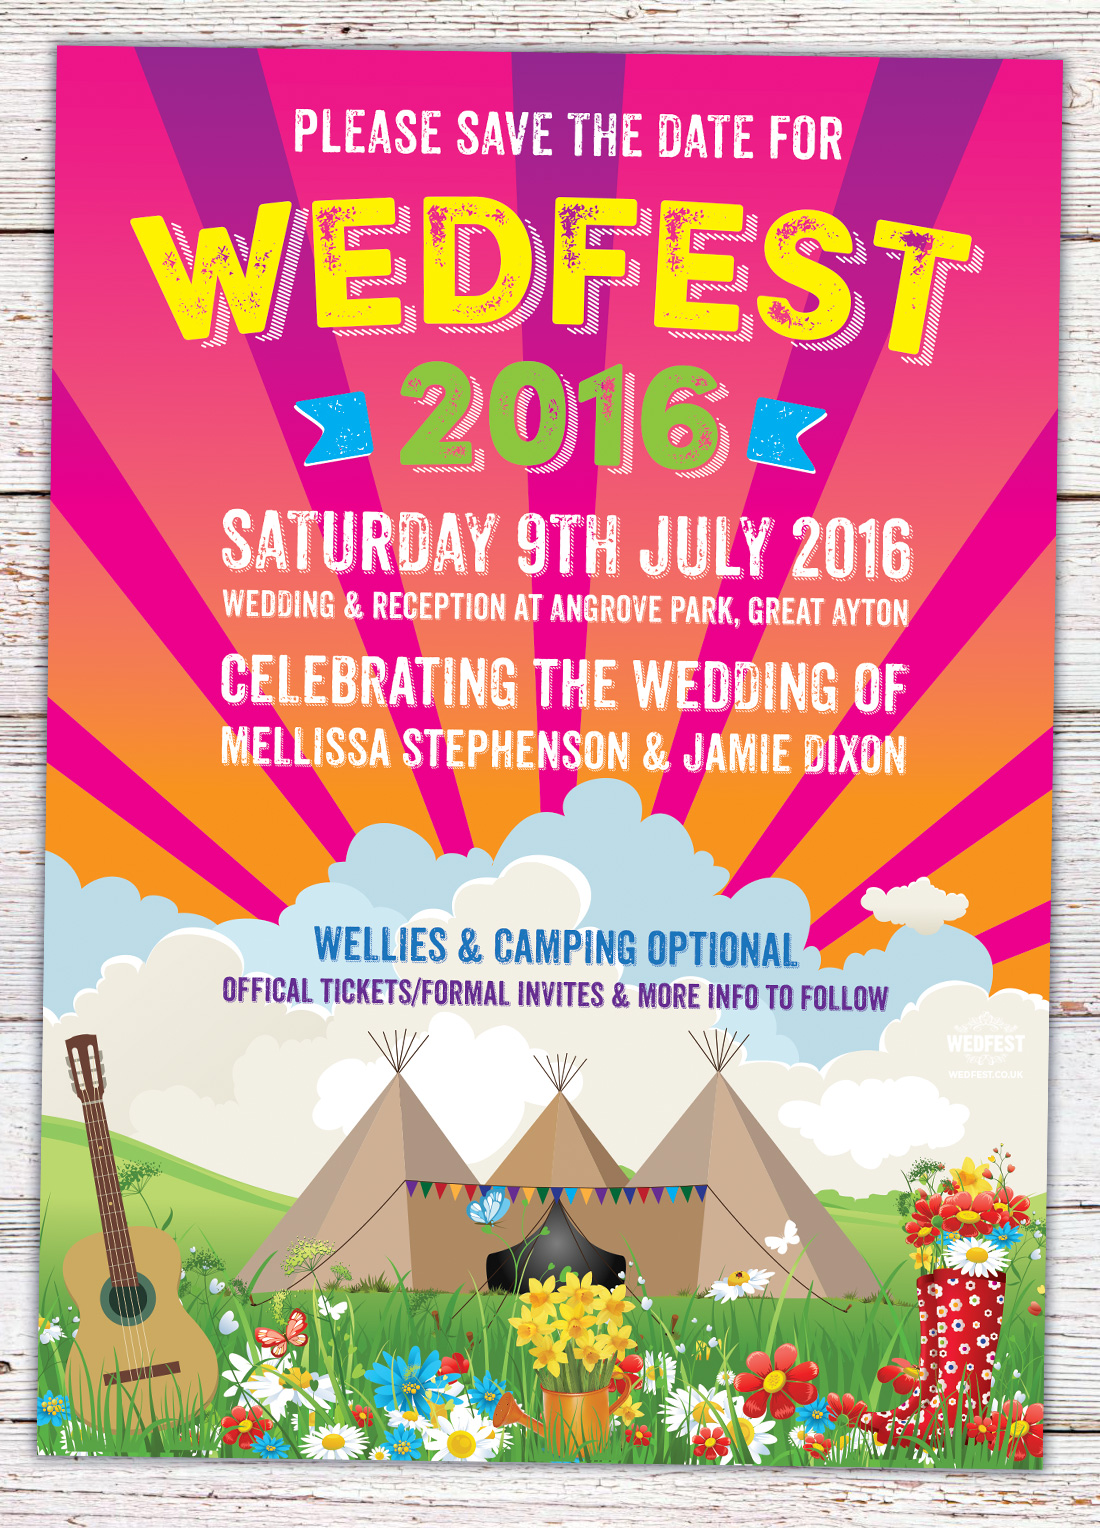 tipi festival wedding wedfest save the date cards